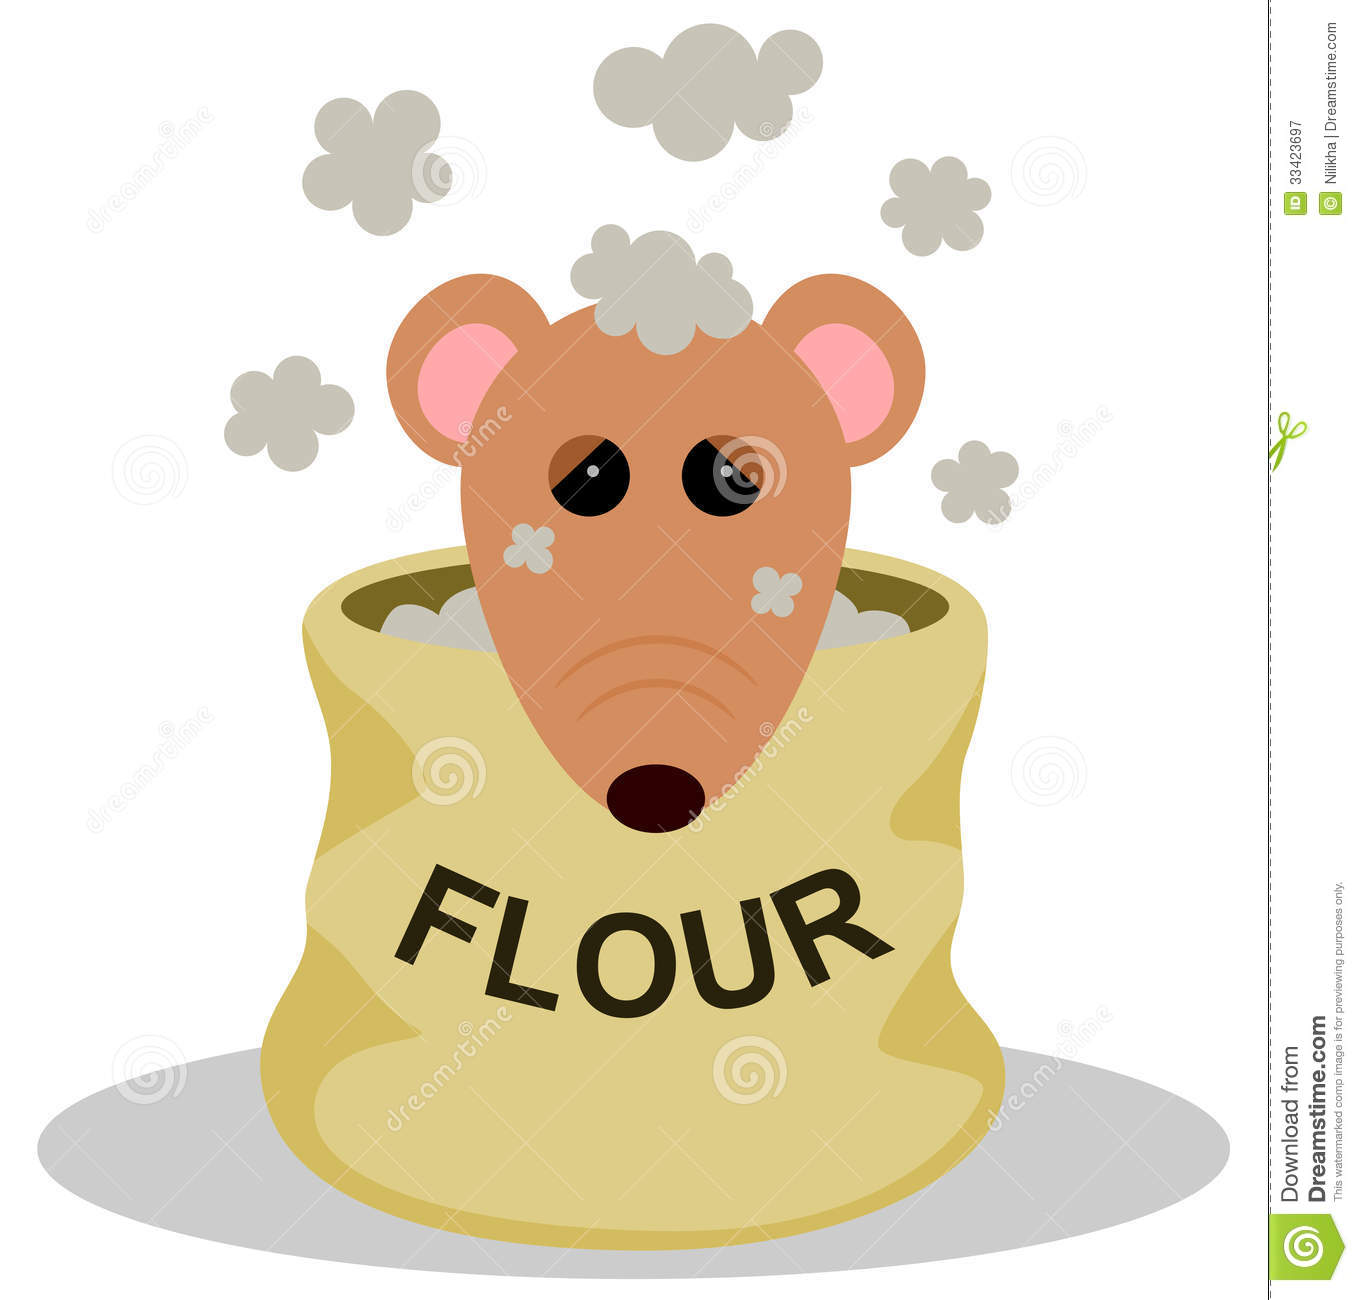 rat in flour royalty free stock photography image 33423697. Black Bedroom Furniture Sets. Home Design Ideas